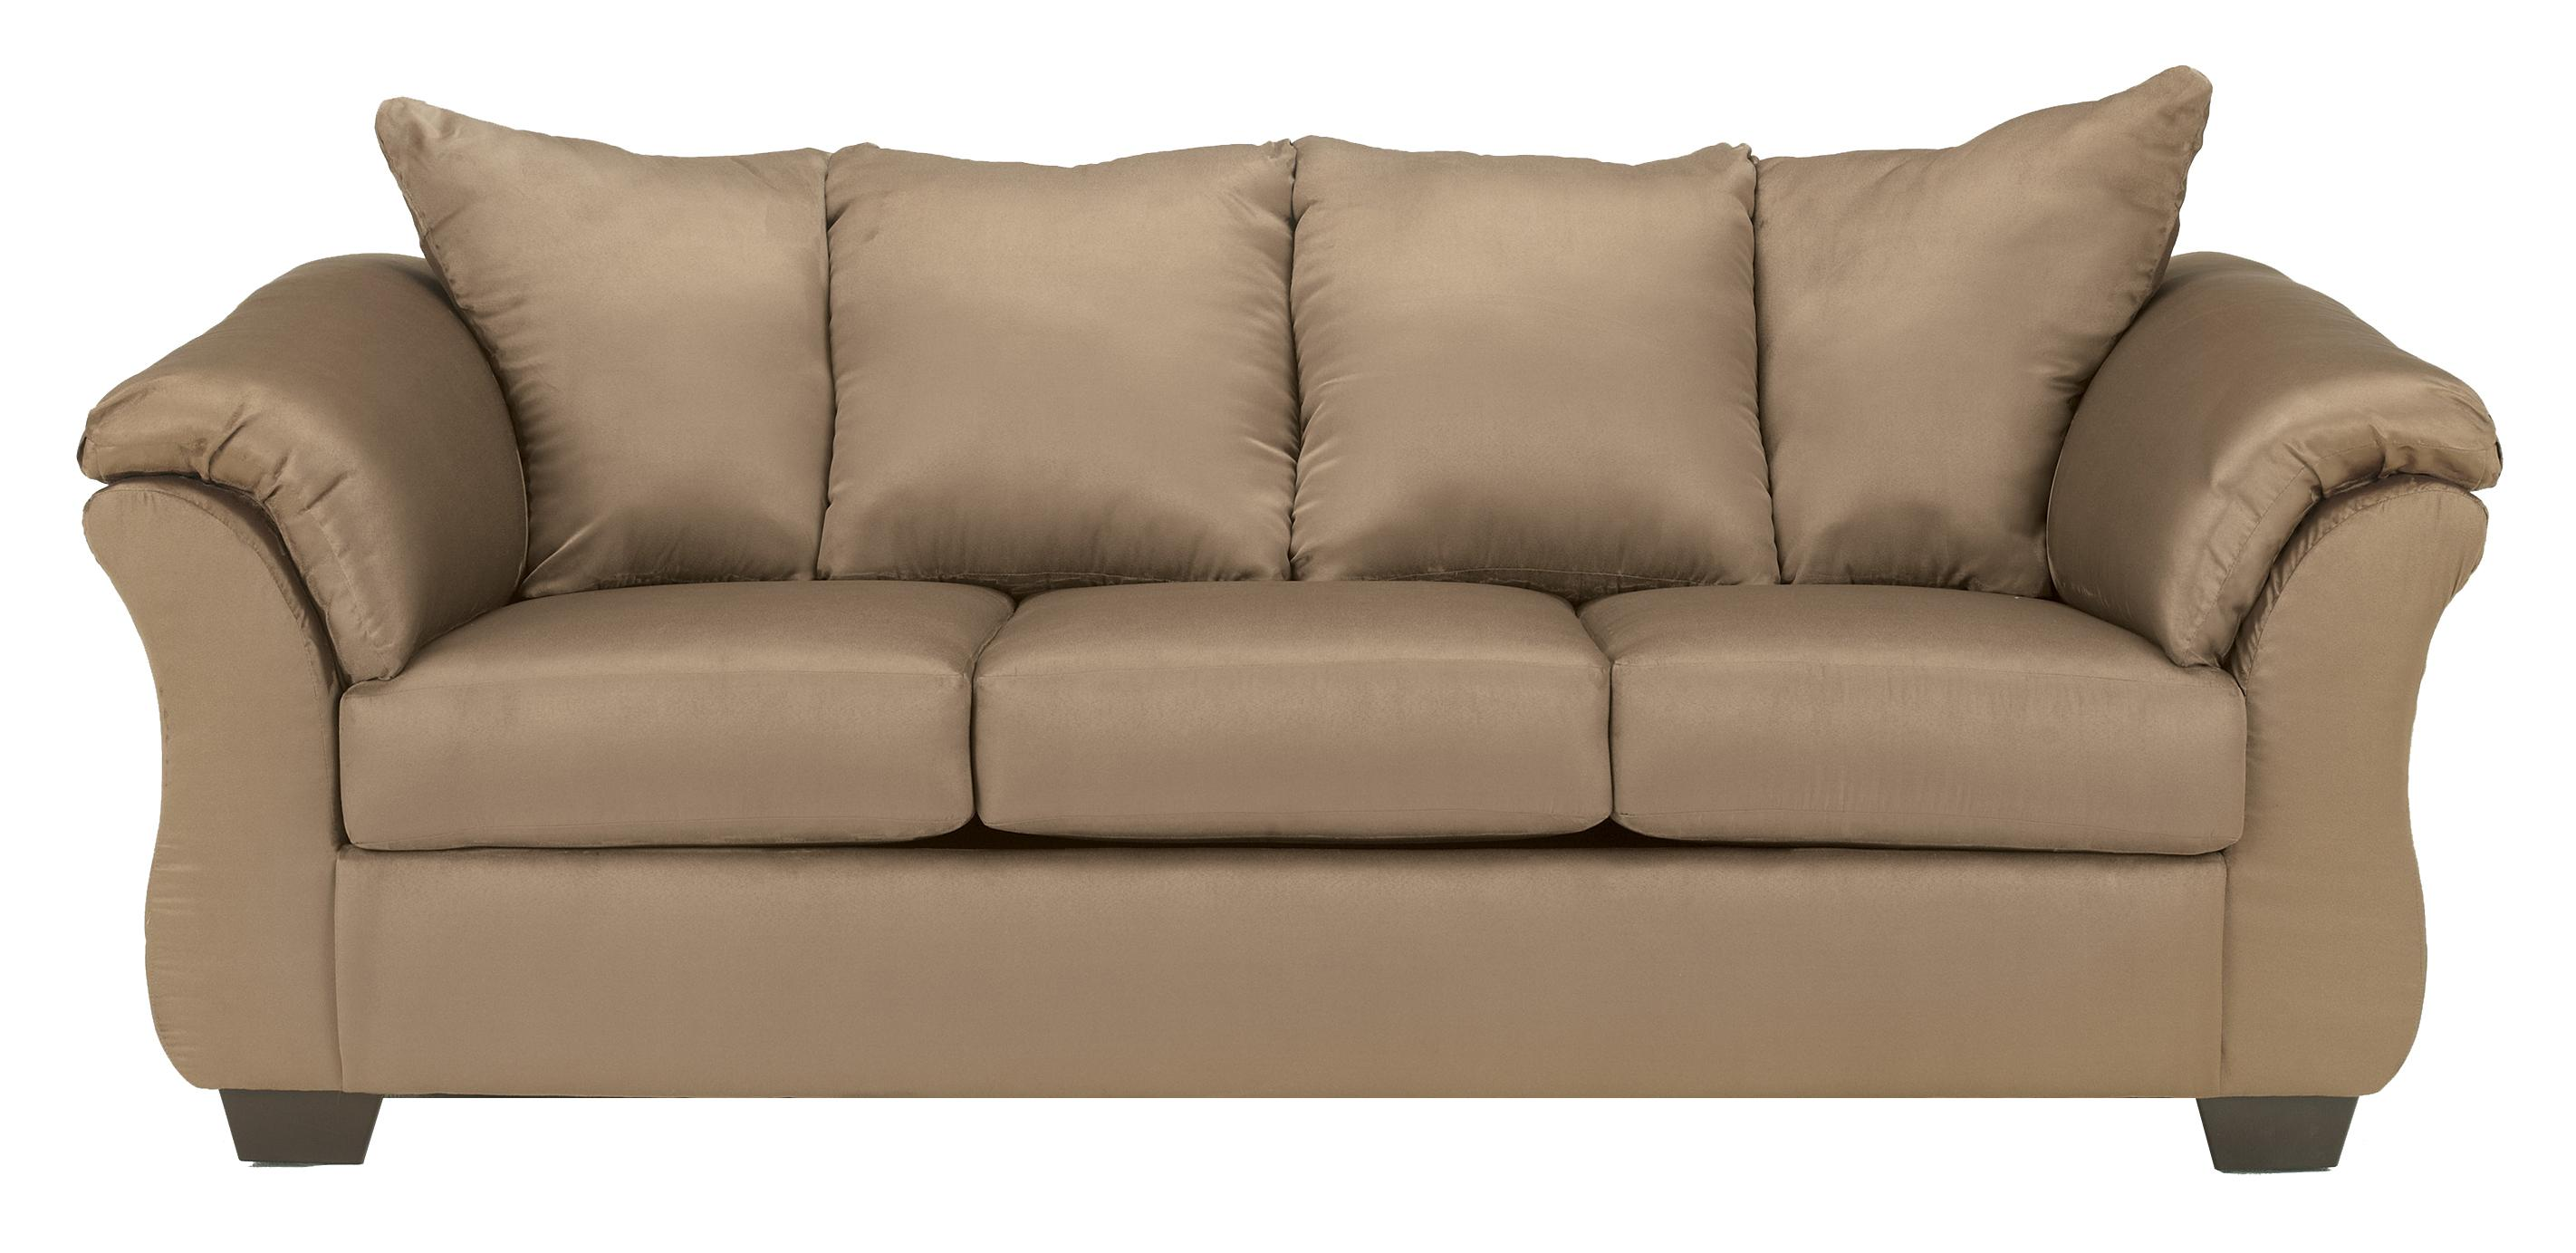 Darcy - Mocha Stationary Sofa by Signature at Walker's Furniture